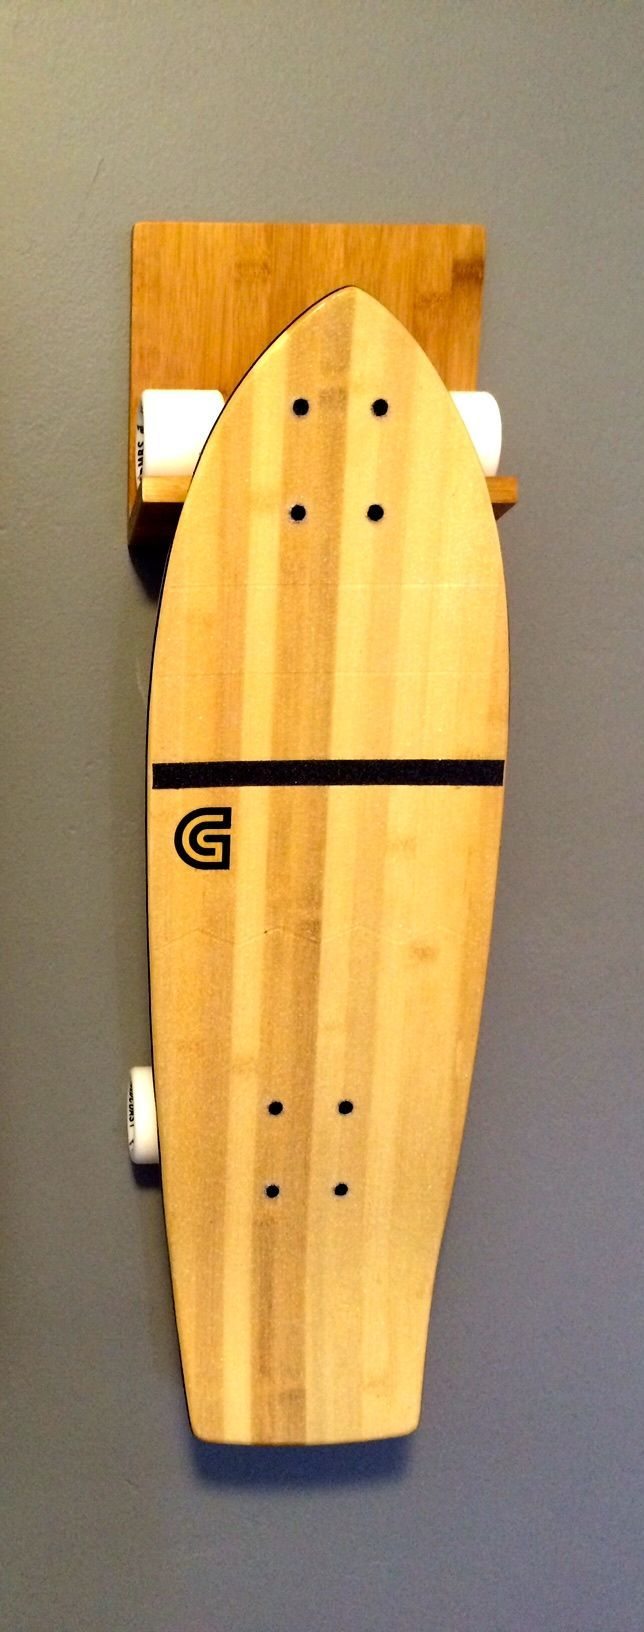 27 best display your longboard skateboard images on pinterest bamboo wood skateboard wall rack amipublicfo Images